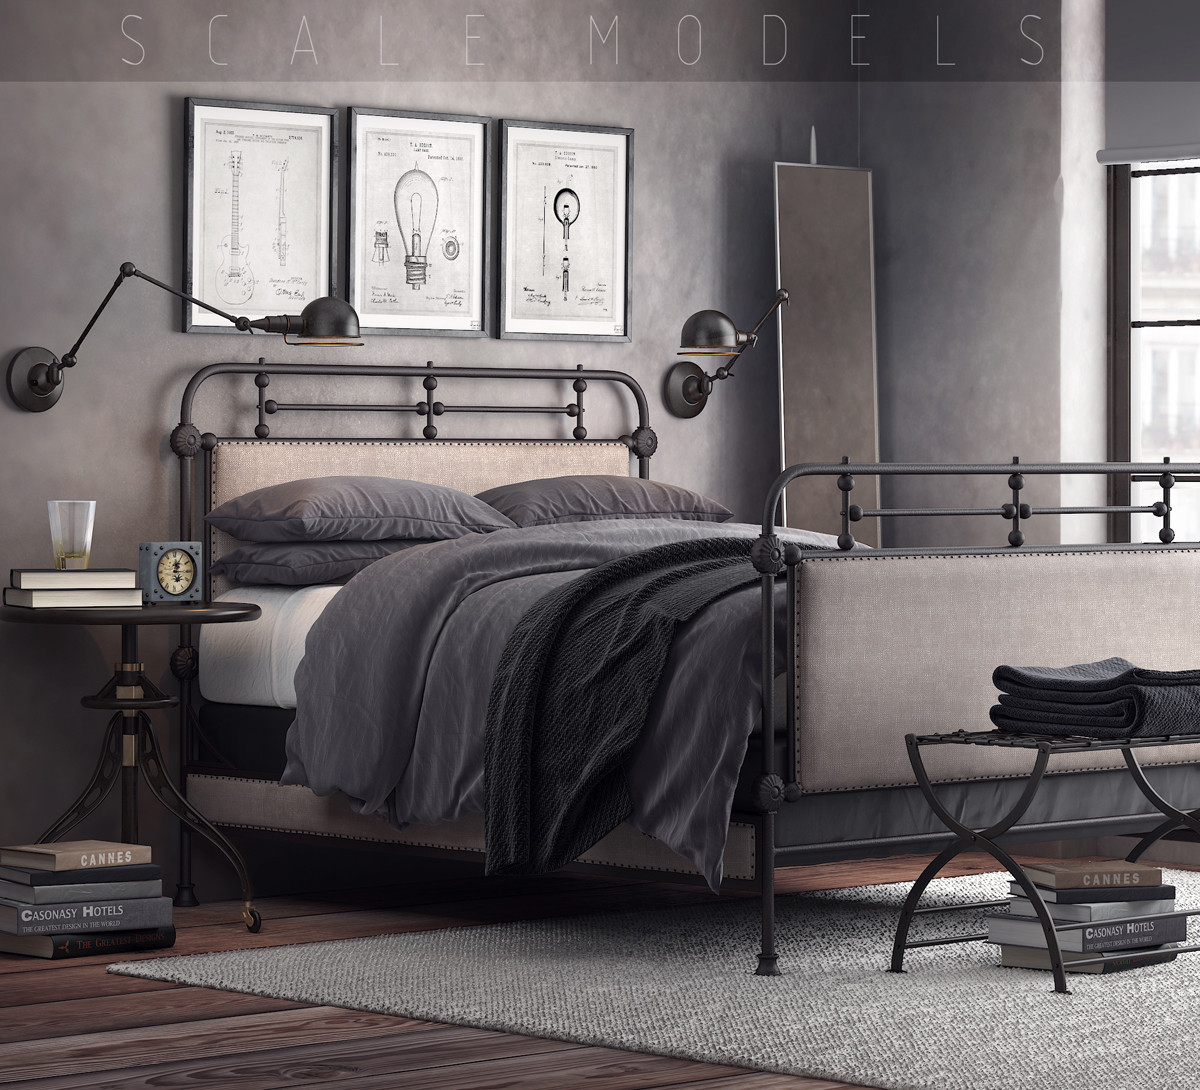 BEDROOM_RENDERING.jpg